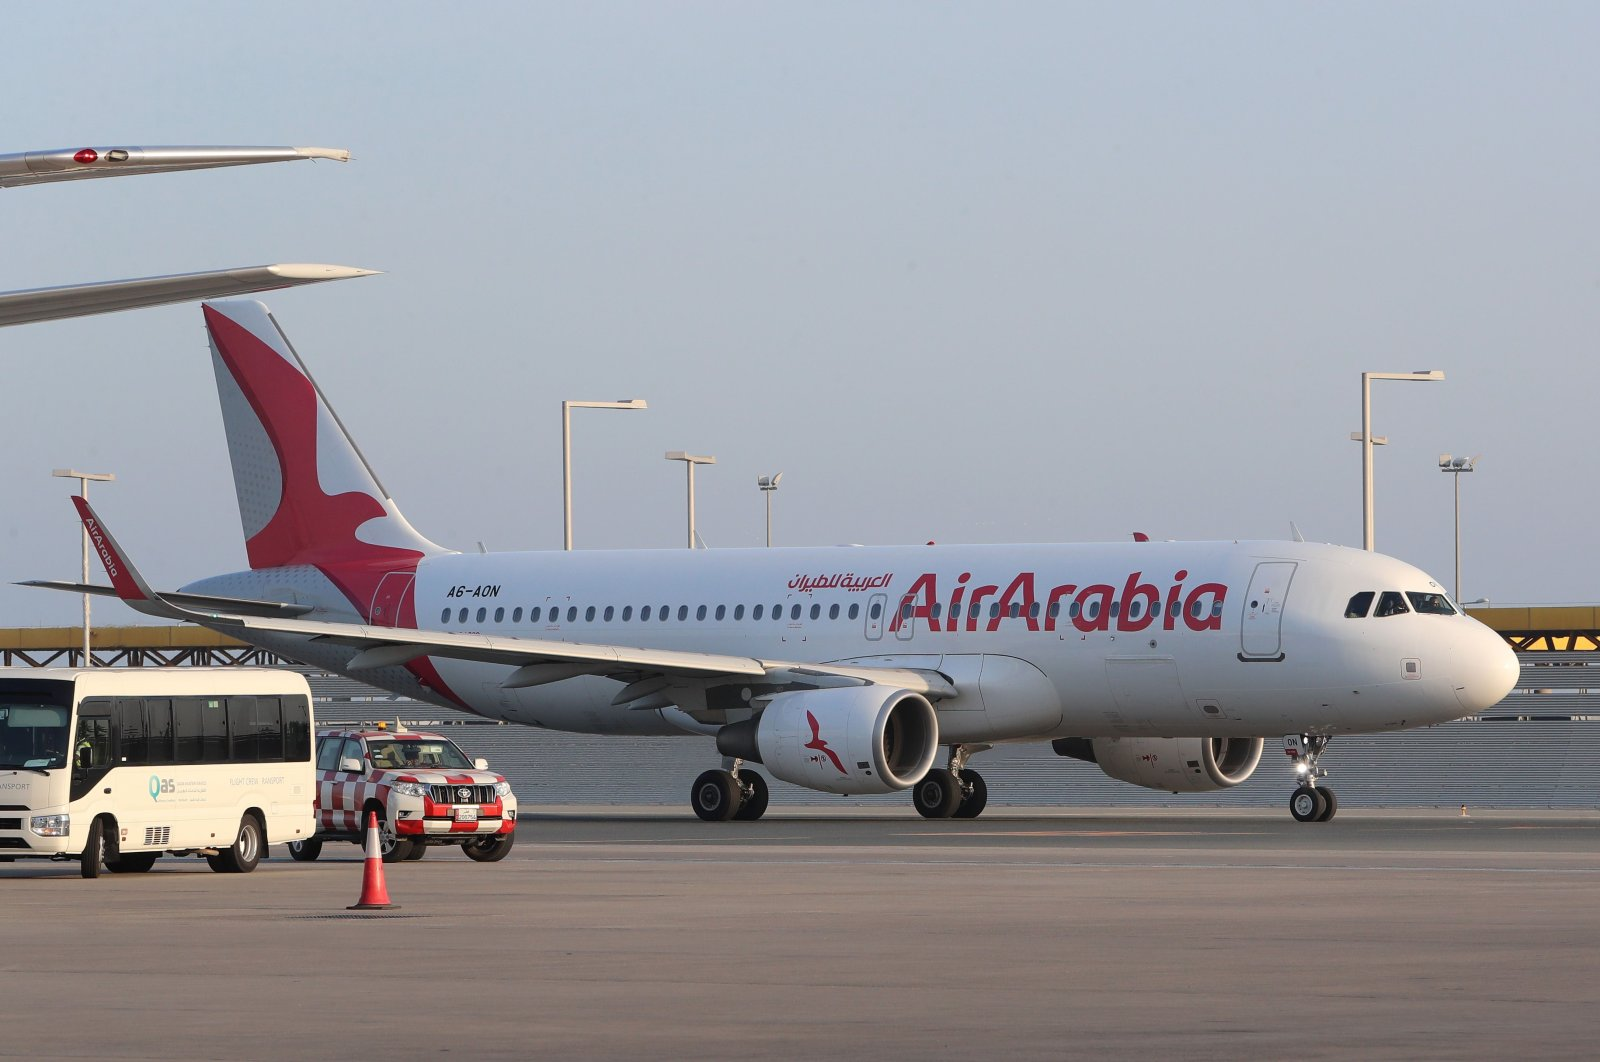 An Air Arabia Airbus A320 aircraft is seen taxiing at Qatar's Hamad International Airport near the capital Doha on Jan. 18, 2021. (AFP Photo)